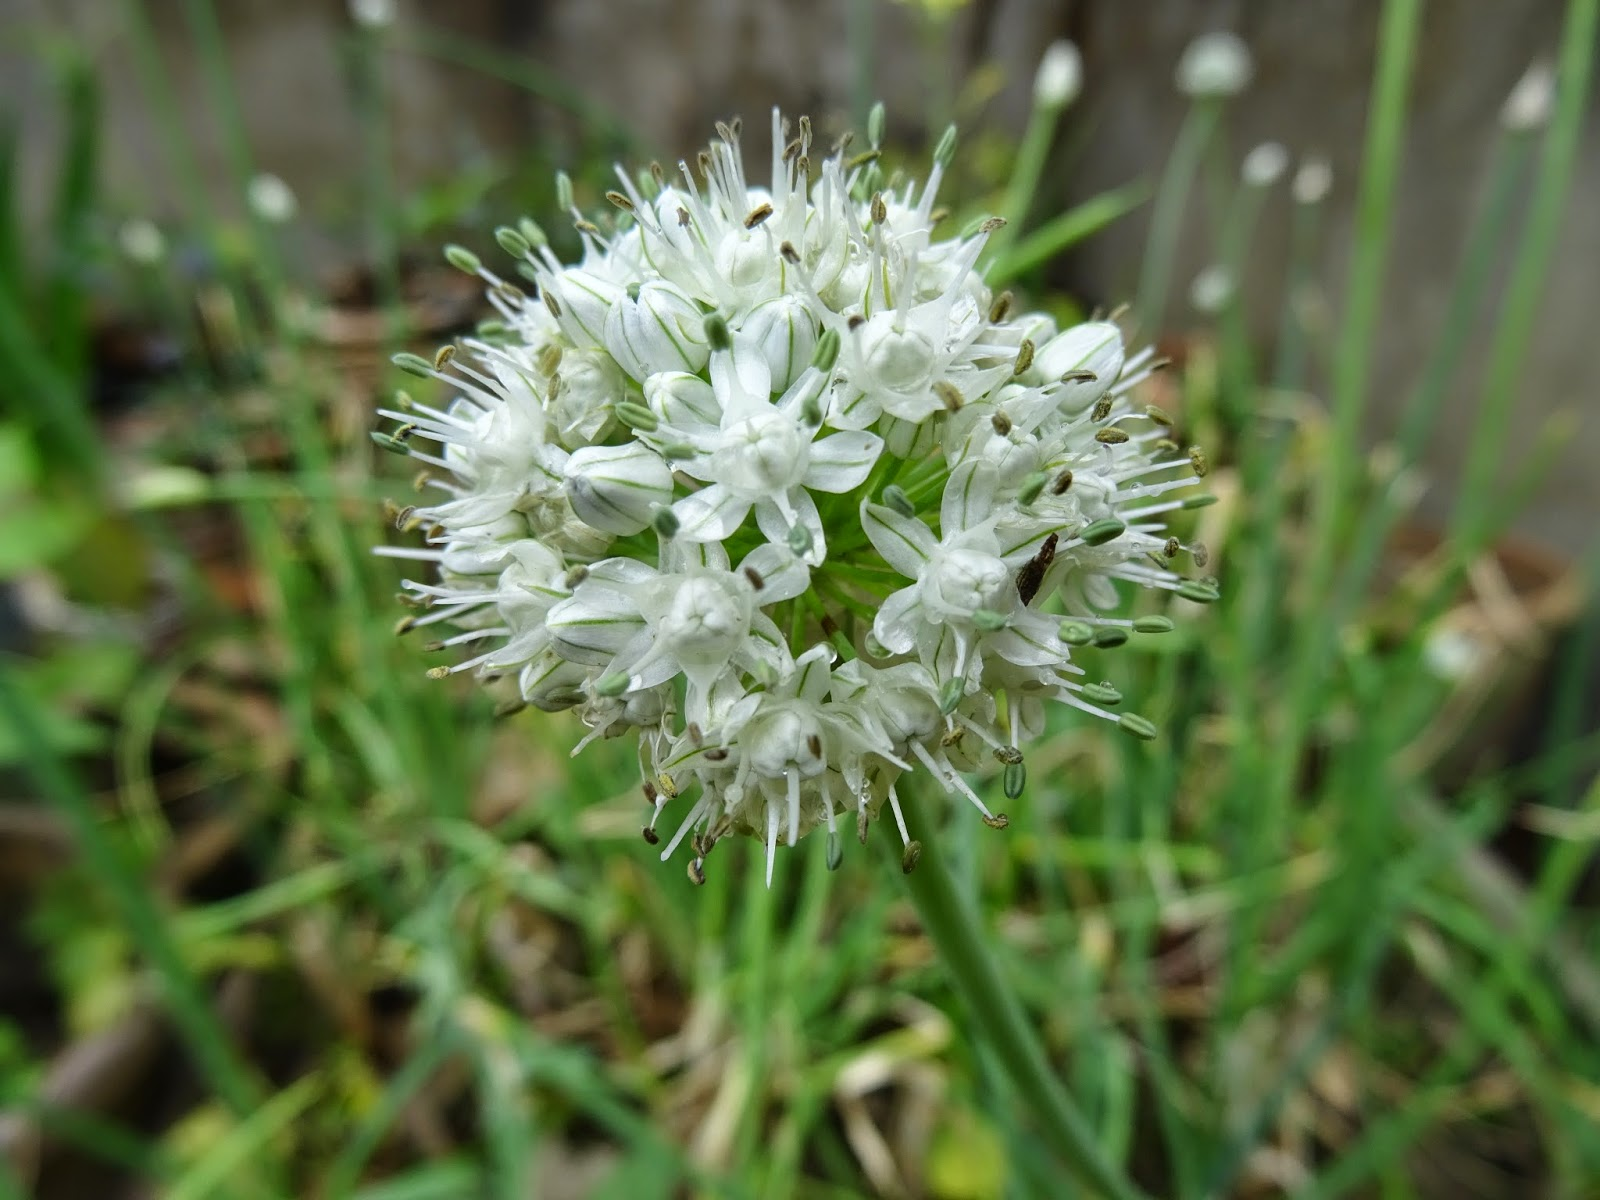 Blooming Onion Plant